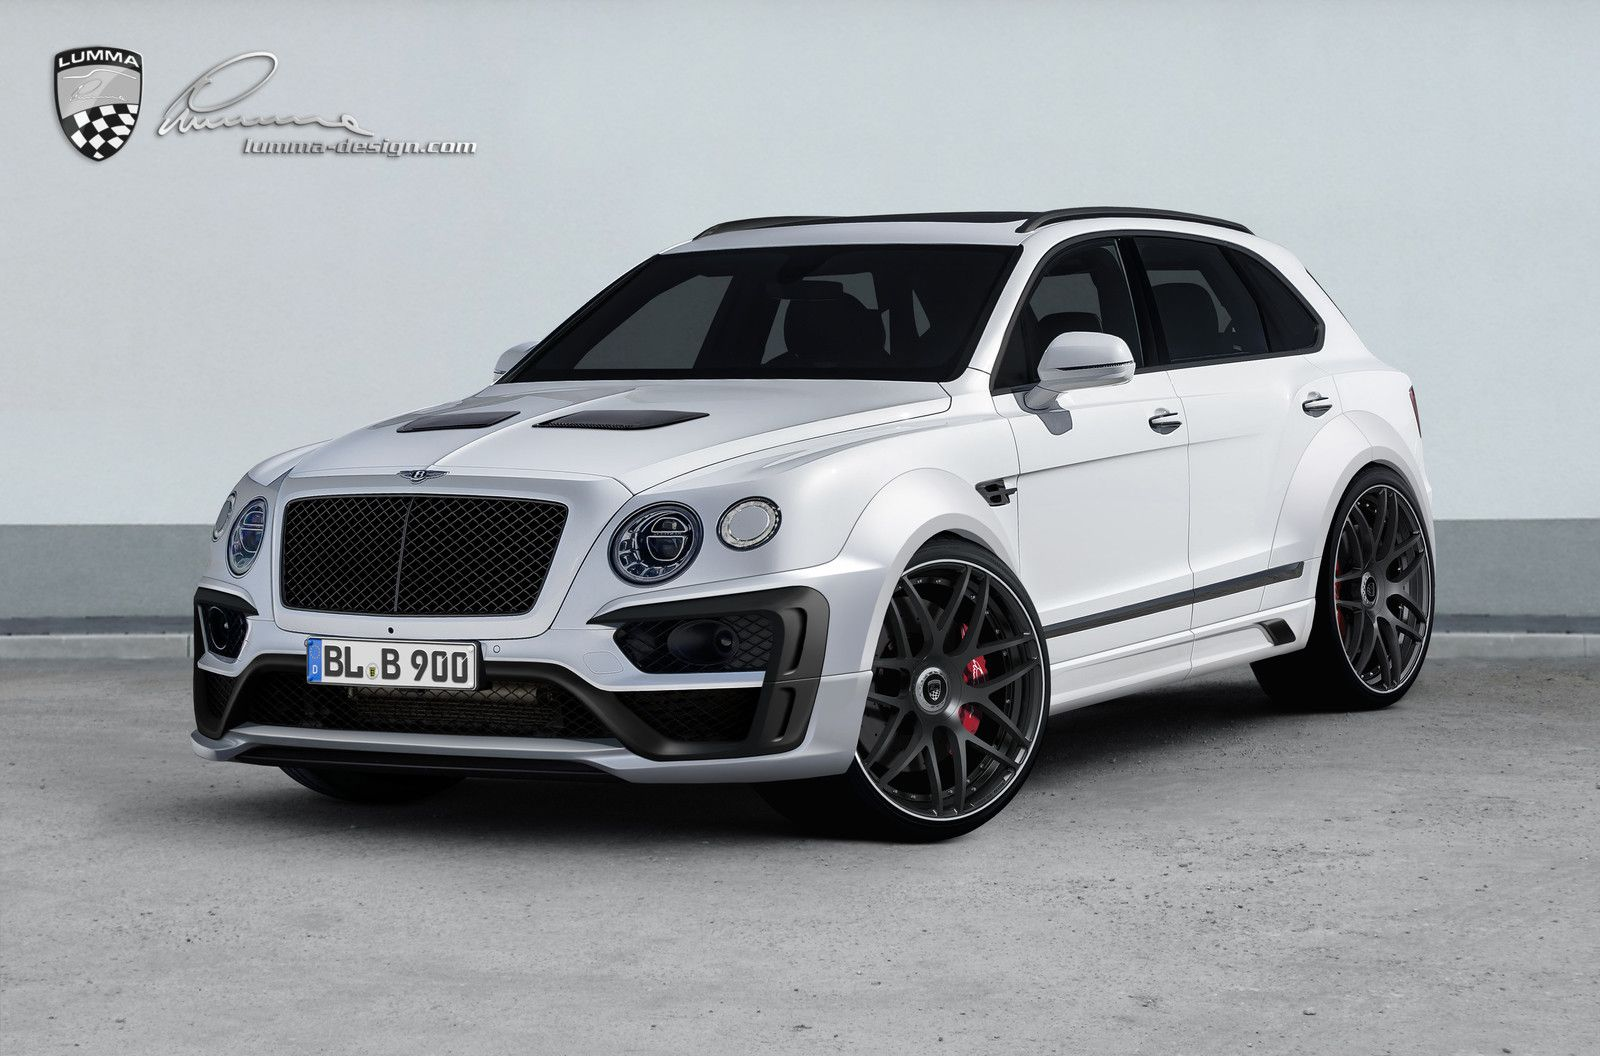 Lumma Design Wants To Help The Bentley Bentayga With A Little More Visual Aggression In Form Of New Widebody Kit And Other Enhancements